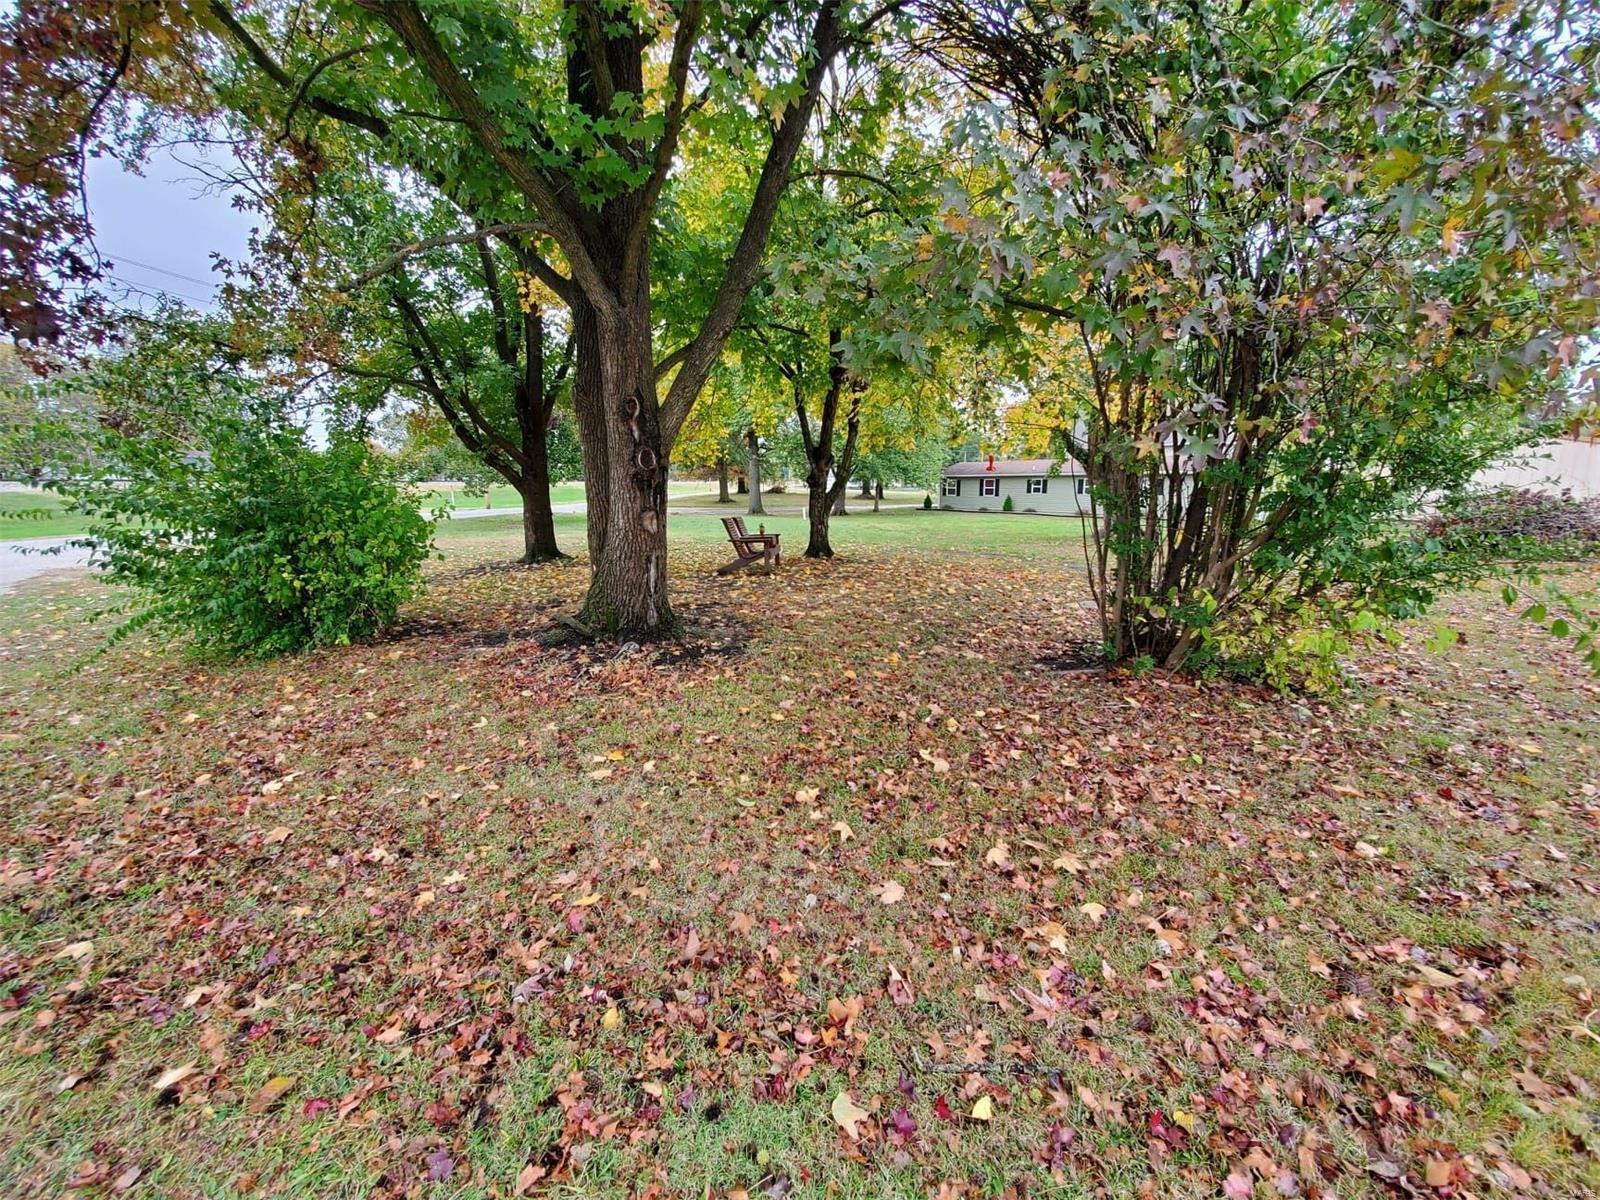 309 S Grace Property Photo - Marissa, IL real estate listing